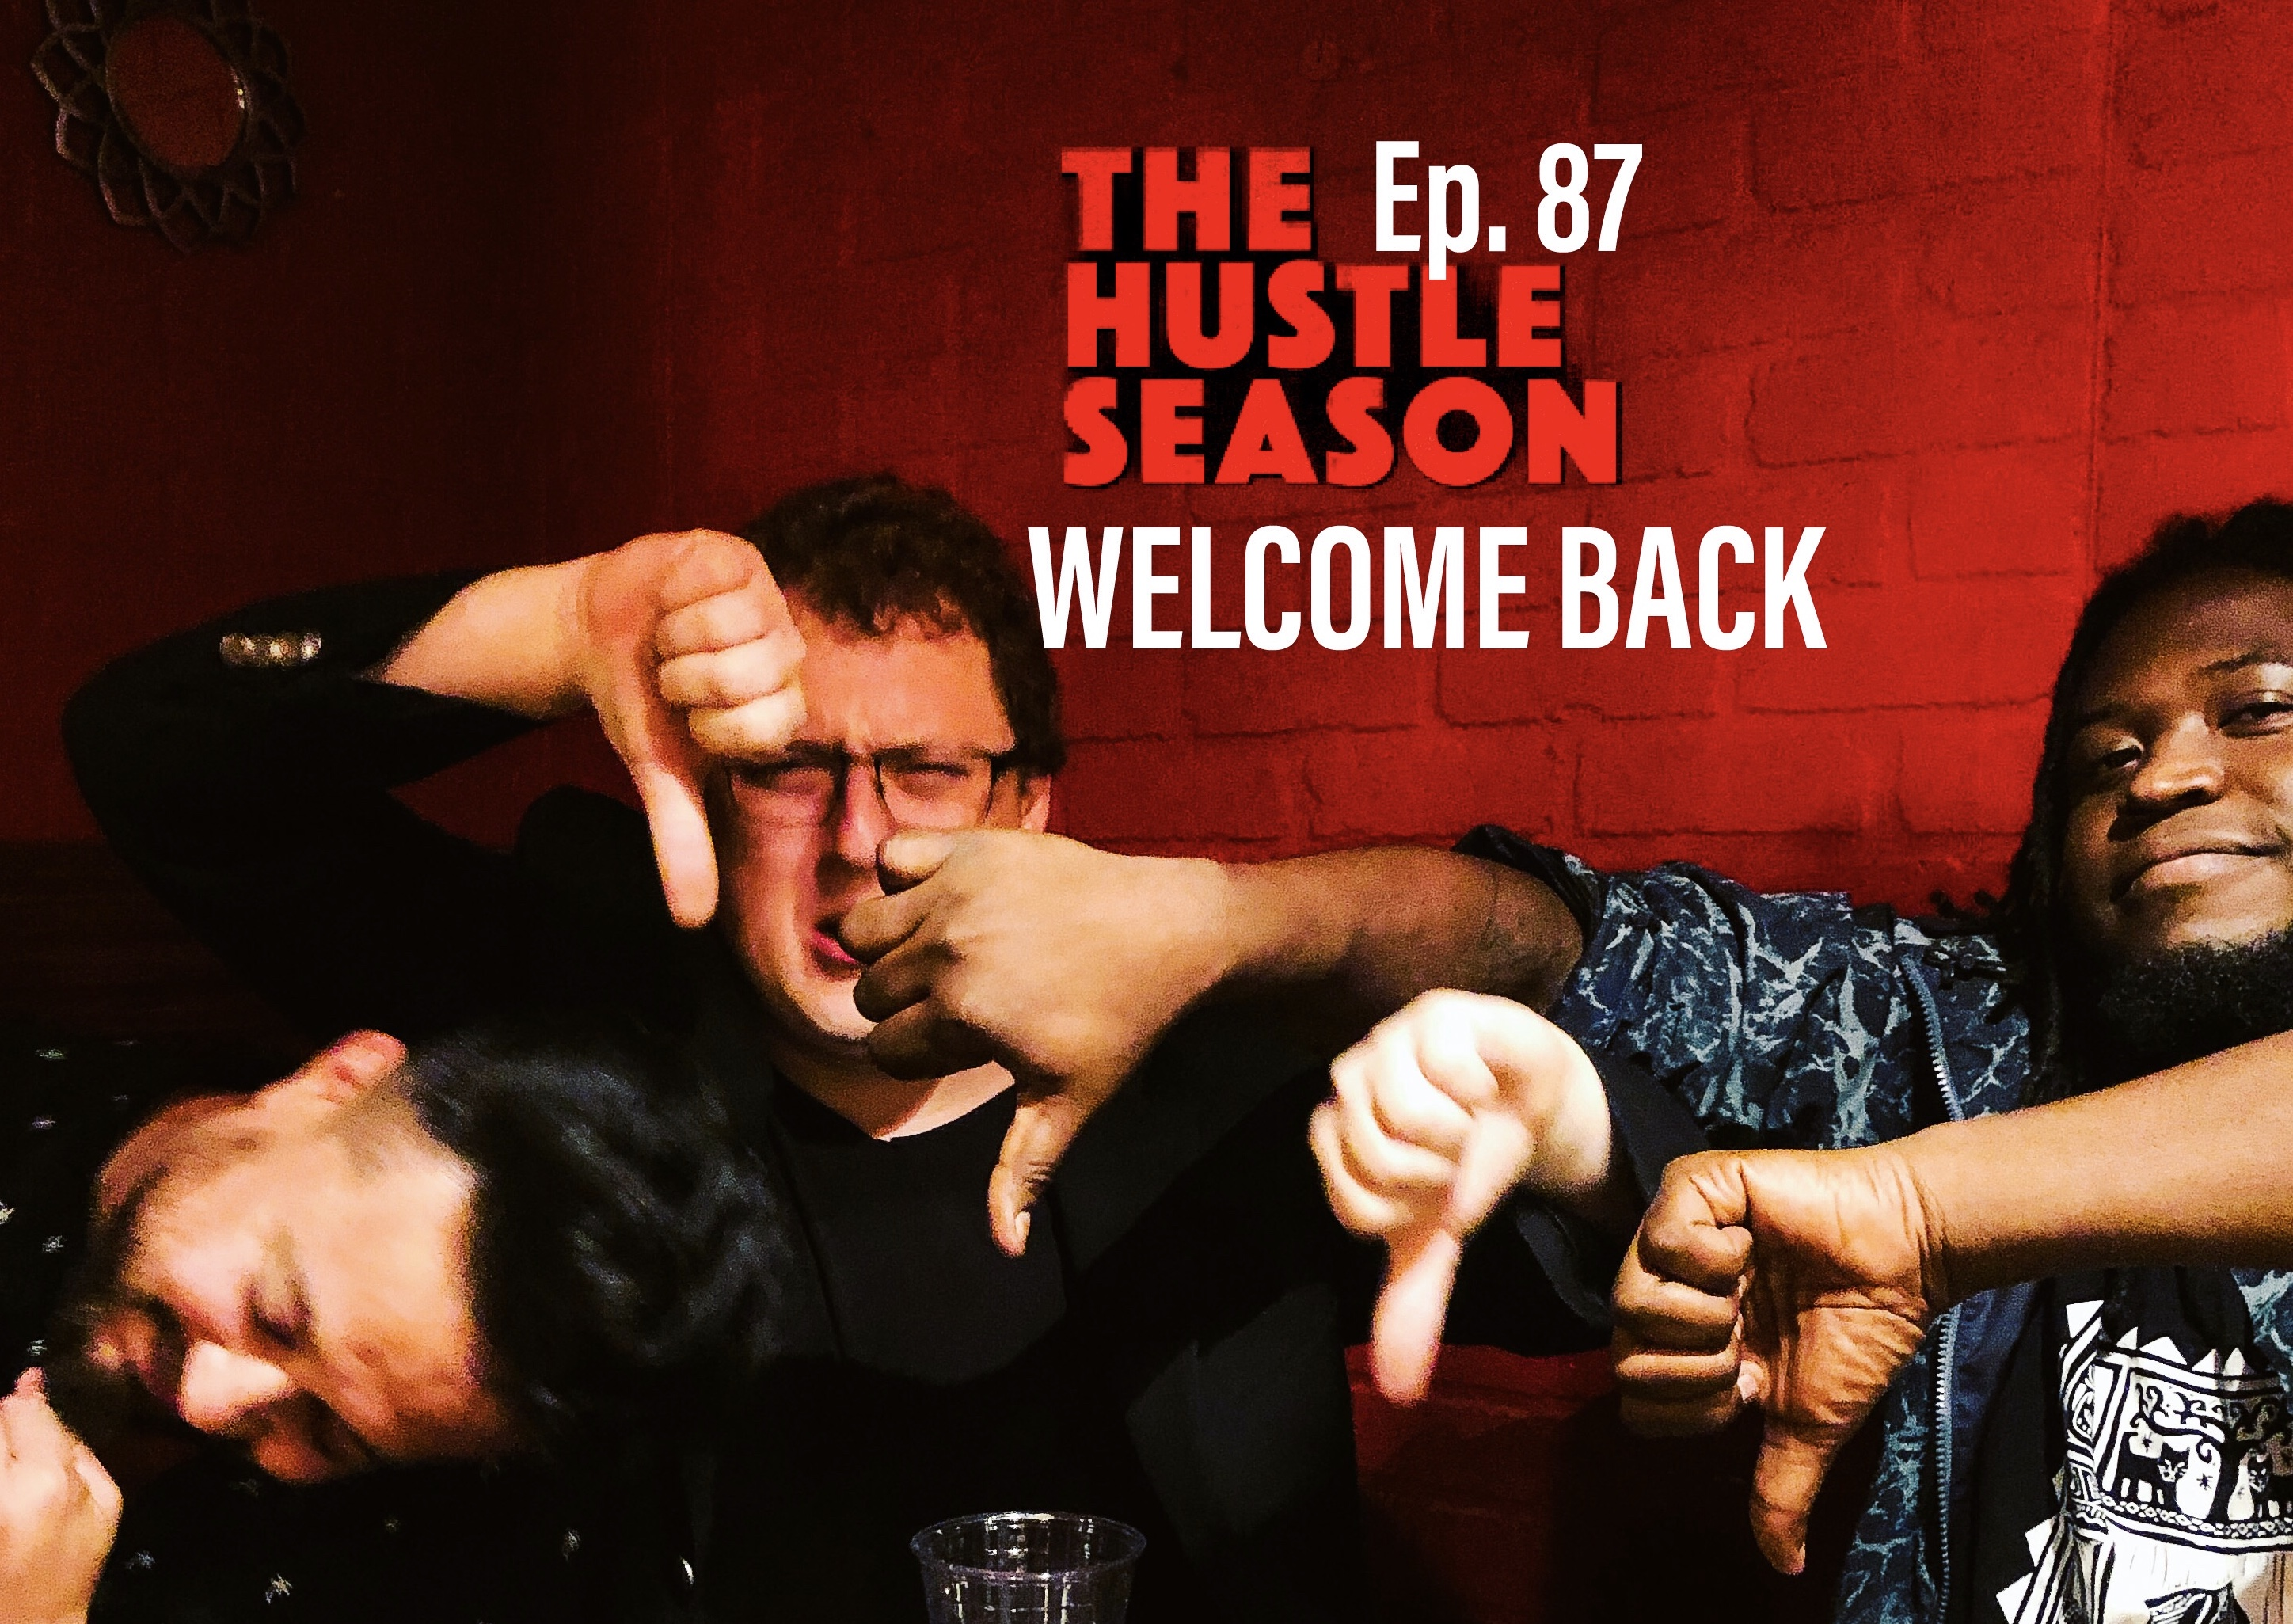 The Hustle Season Podcast: Ep. 87 Welcome Back